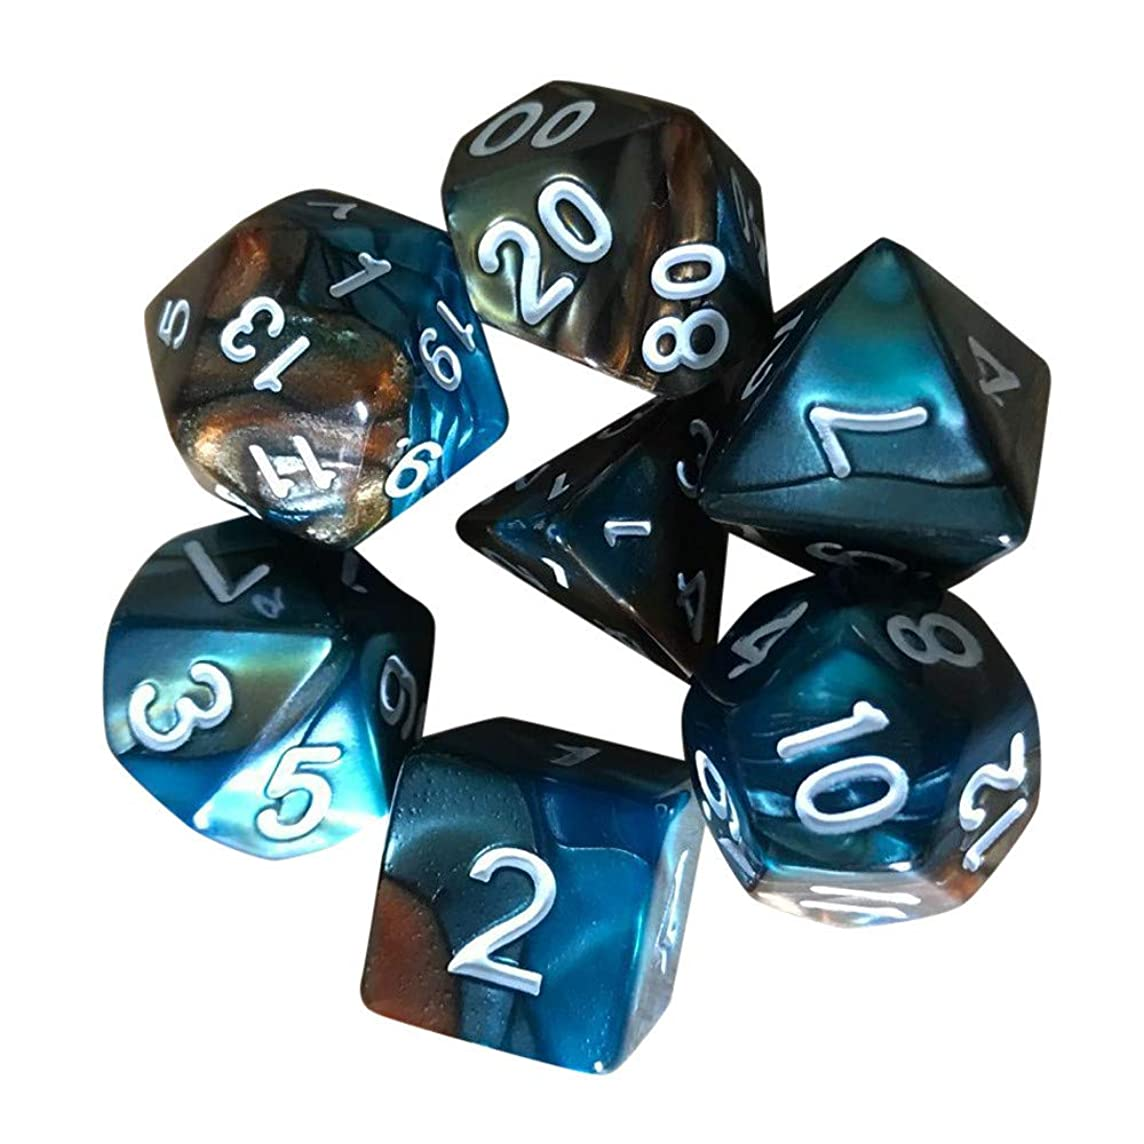 MultiSided Acrylic Dice 7pcs/Set TRPG Game Dungeons & Dragons Polyhedral D4-D20